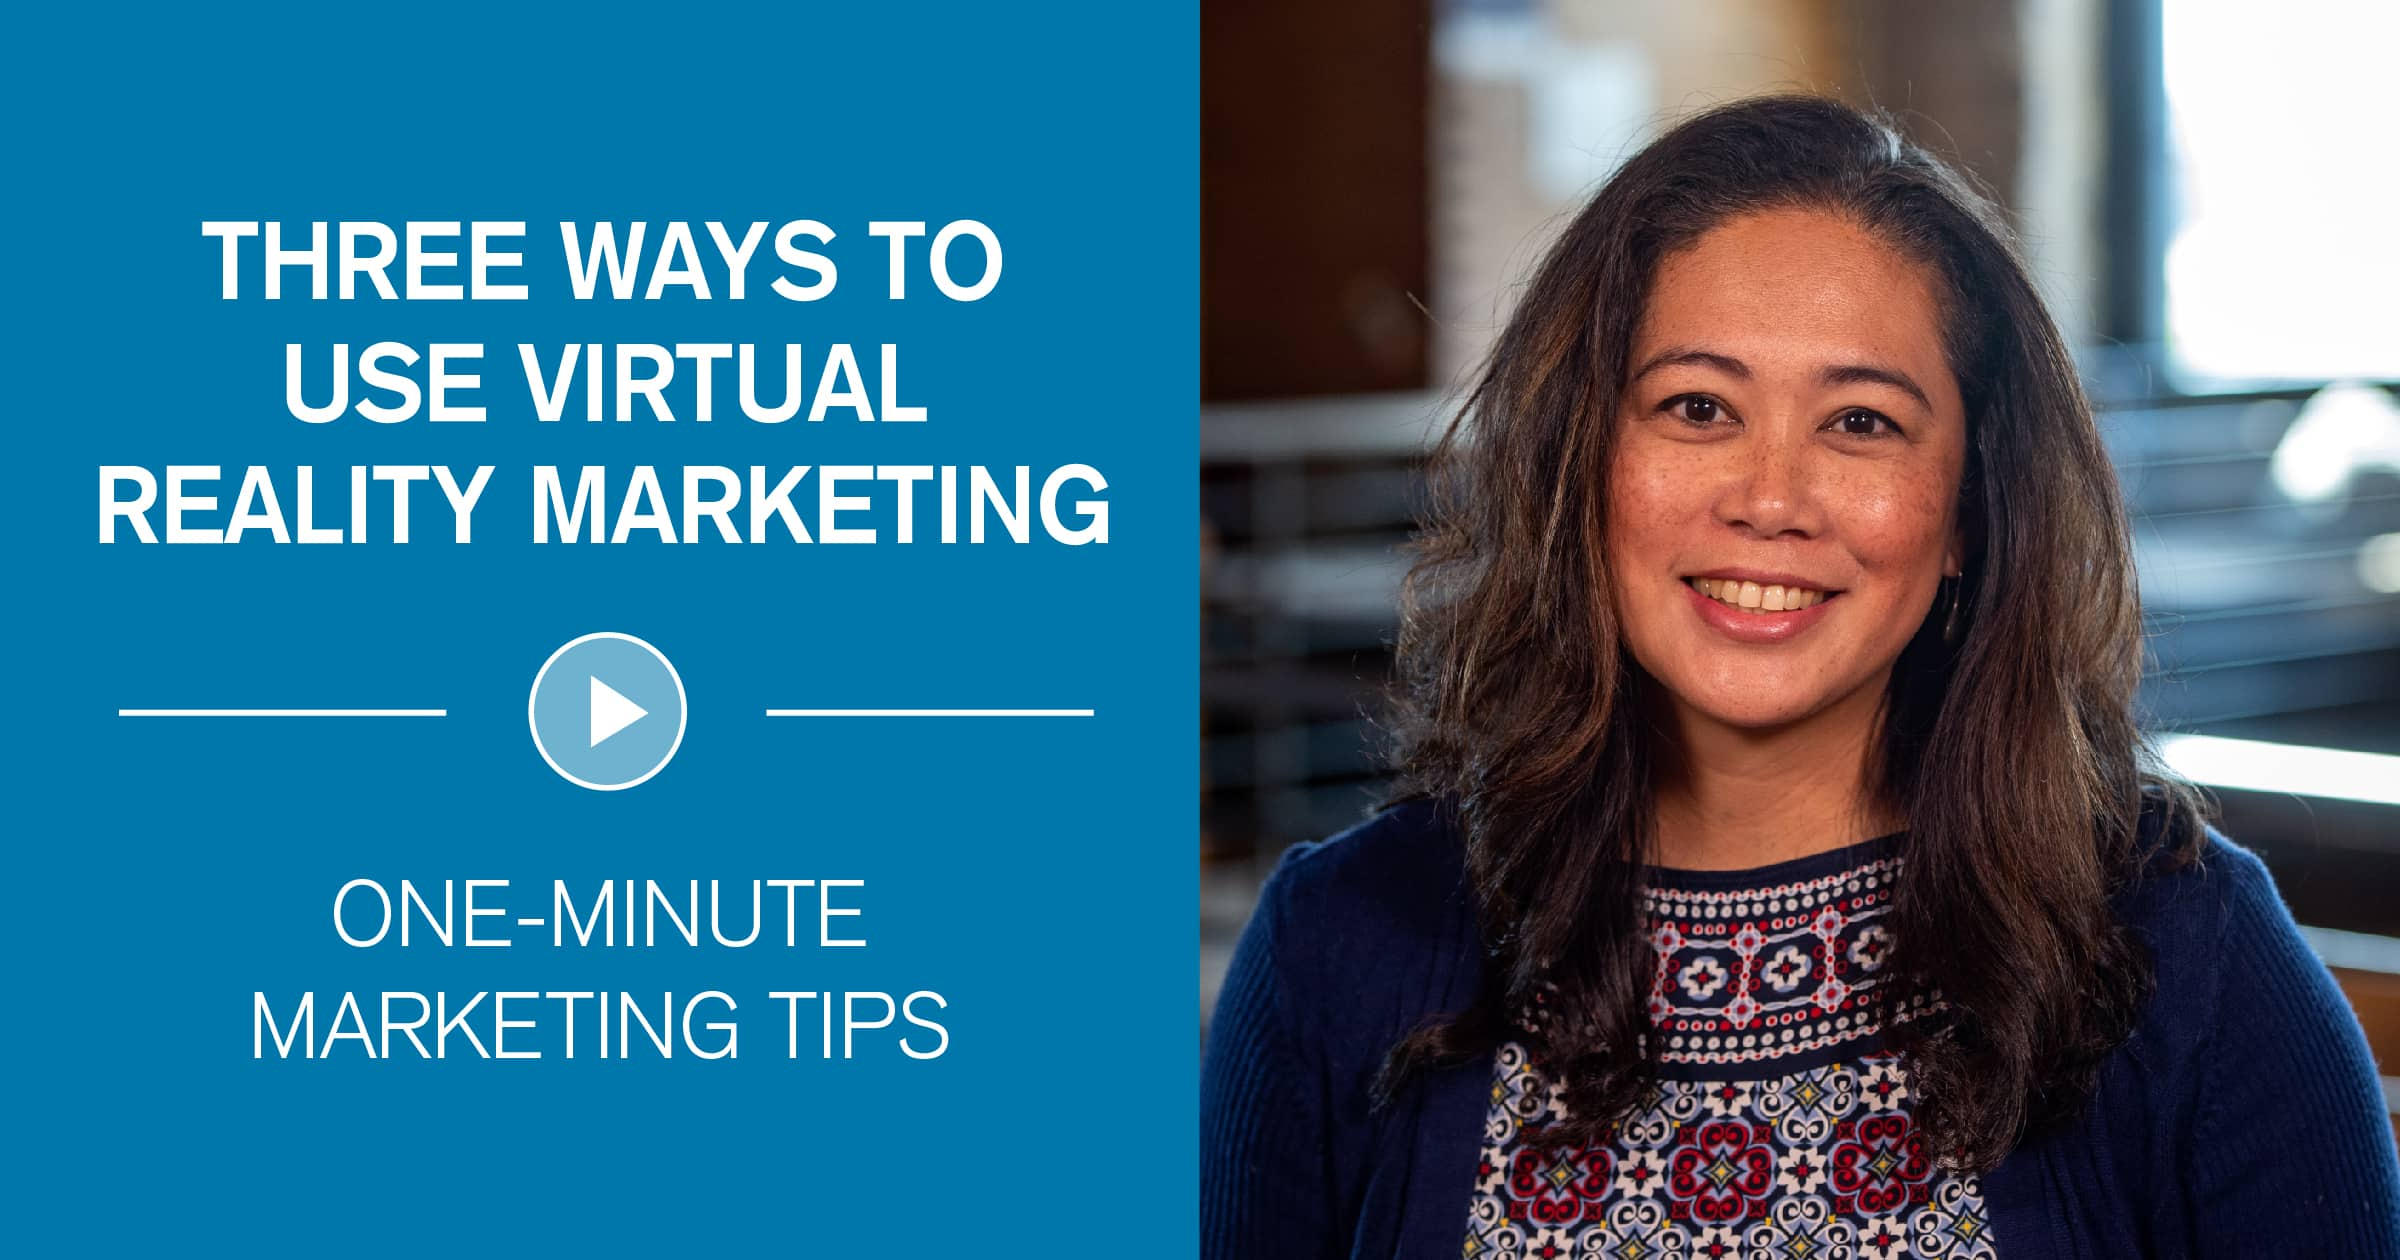 3 Ways to Use Virtual Reality Marketing